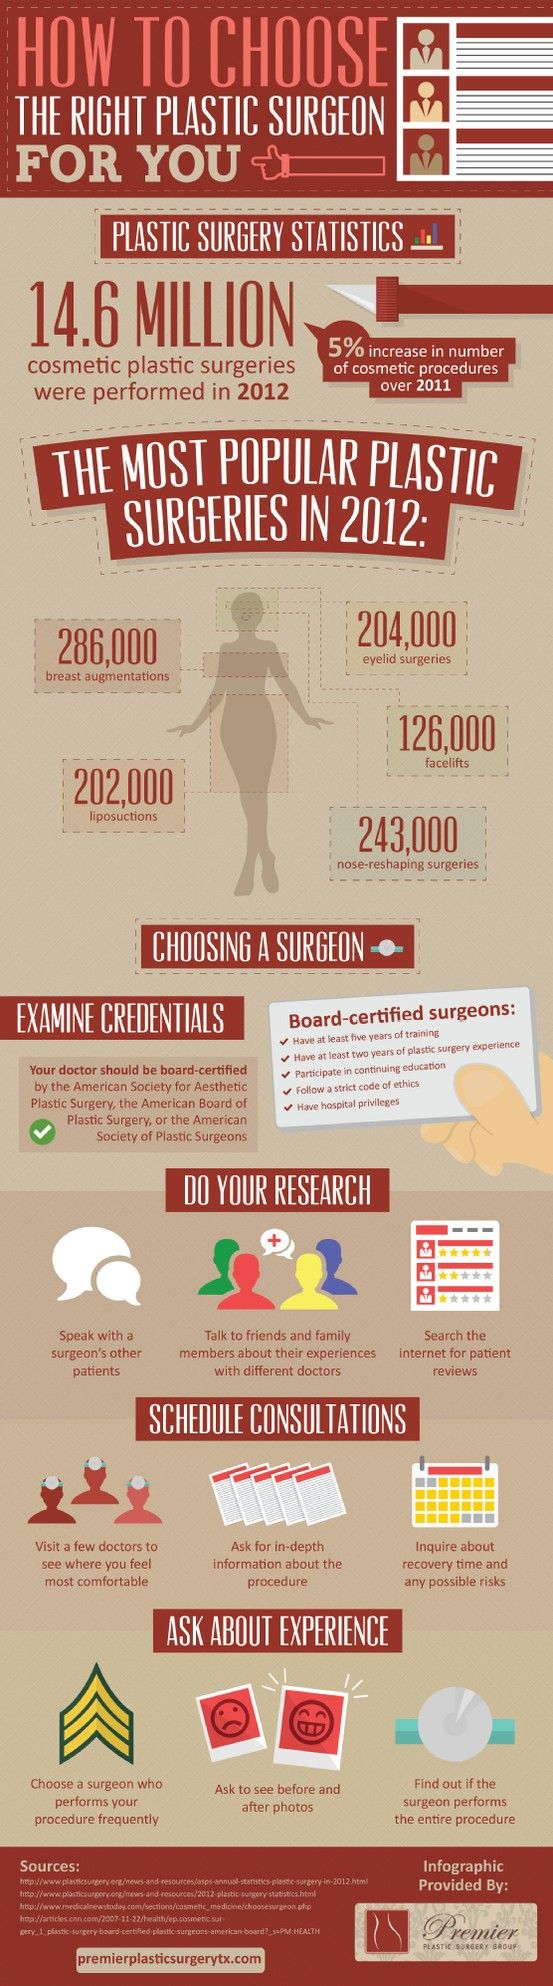 The doctor you choose to perform your plastic surgery procedure should be certified by the American Society for Aesthetic Plastic Surgery, the American Board of Plastic Surgery, or the American Society of Plastic Surgeons. This infographic explains what it means to be a board-certified surgeon. Source: http://www.premierplasticsurgerytx.com/669627/2013/03/25/how-to-choose-the-right-plastic-surgeon-for-you-infographic-.html